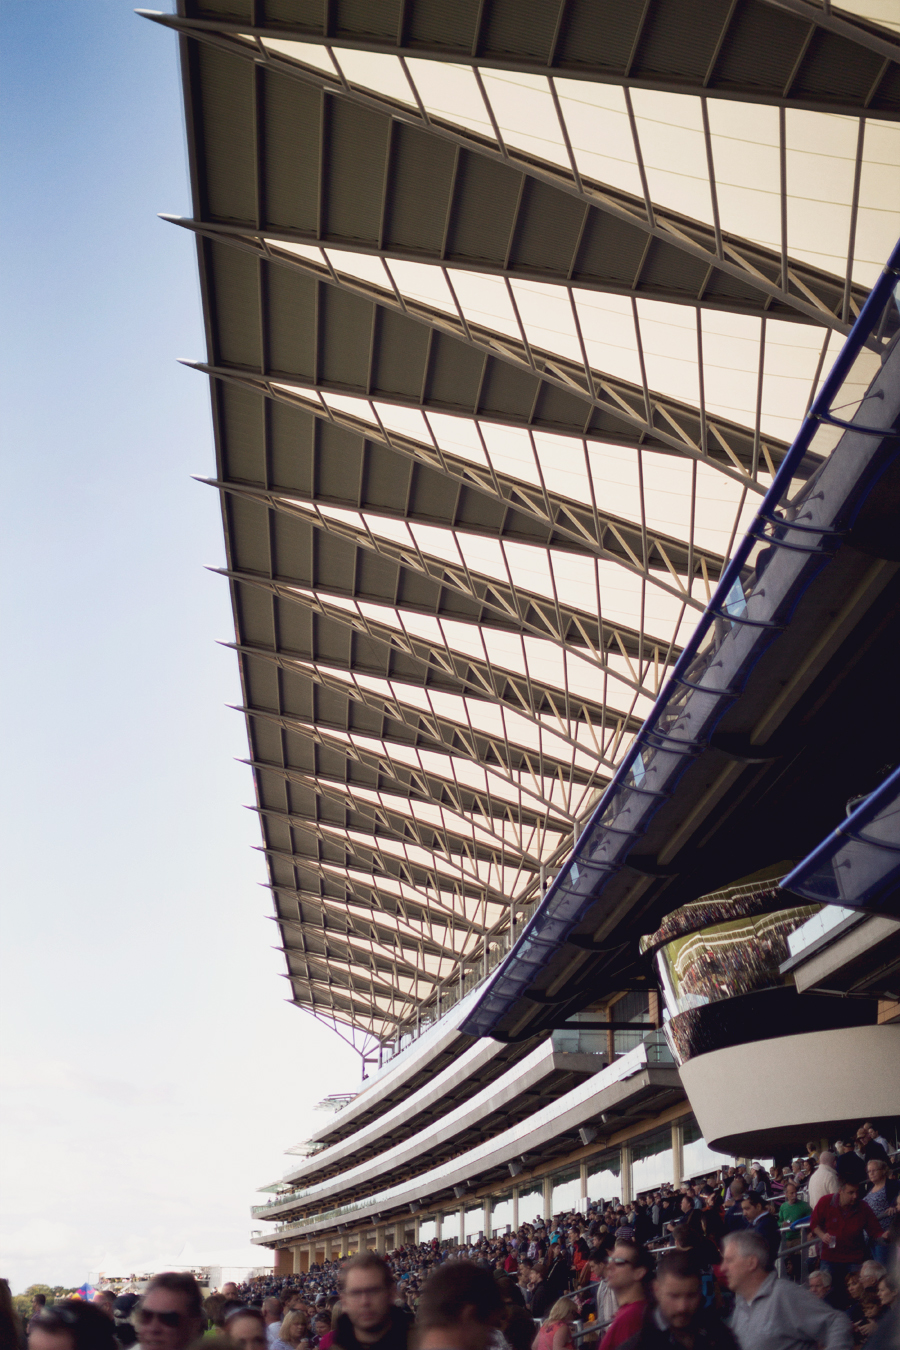 Ascot Racecourse, Windsor